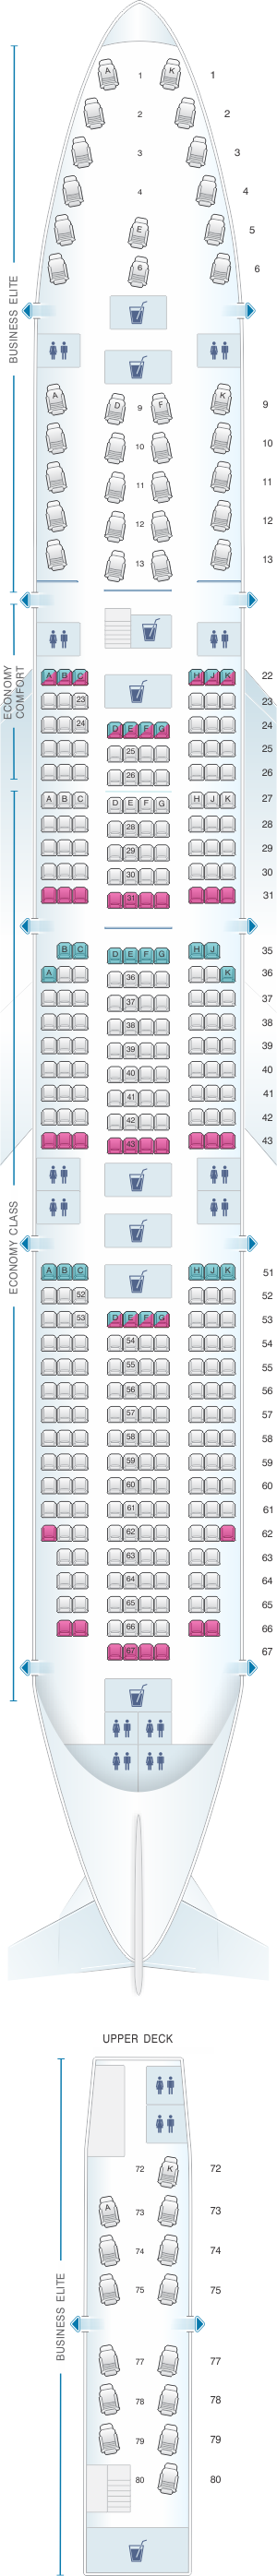 Seat map for Delta Air Lines Boeing B747 400